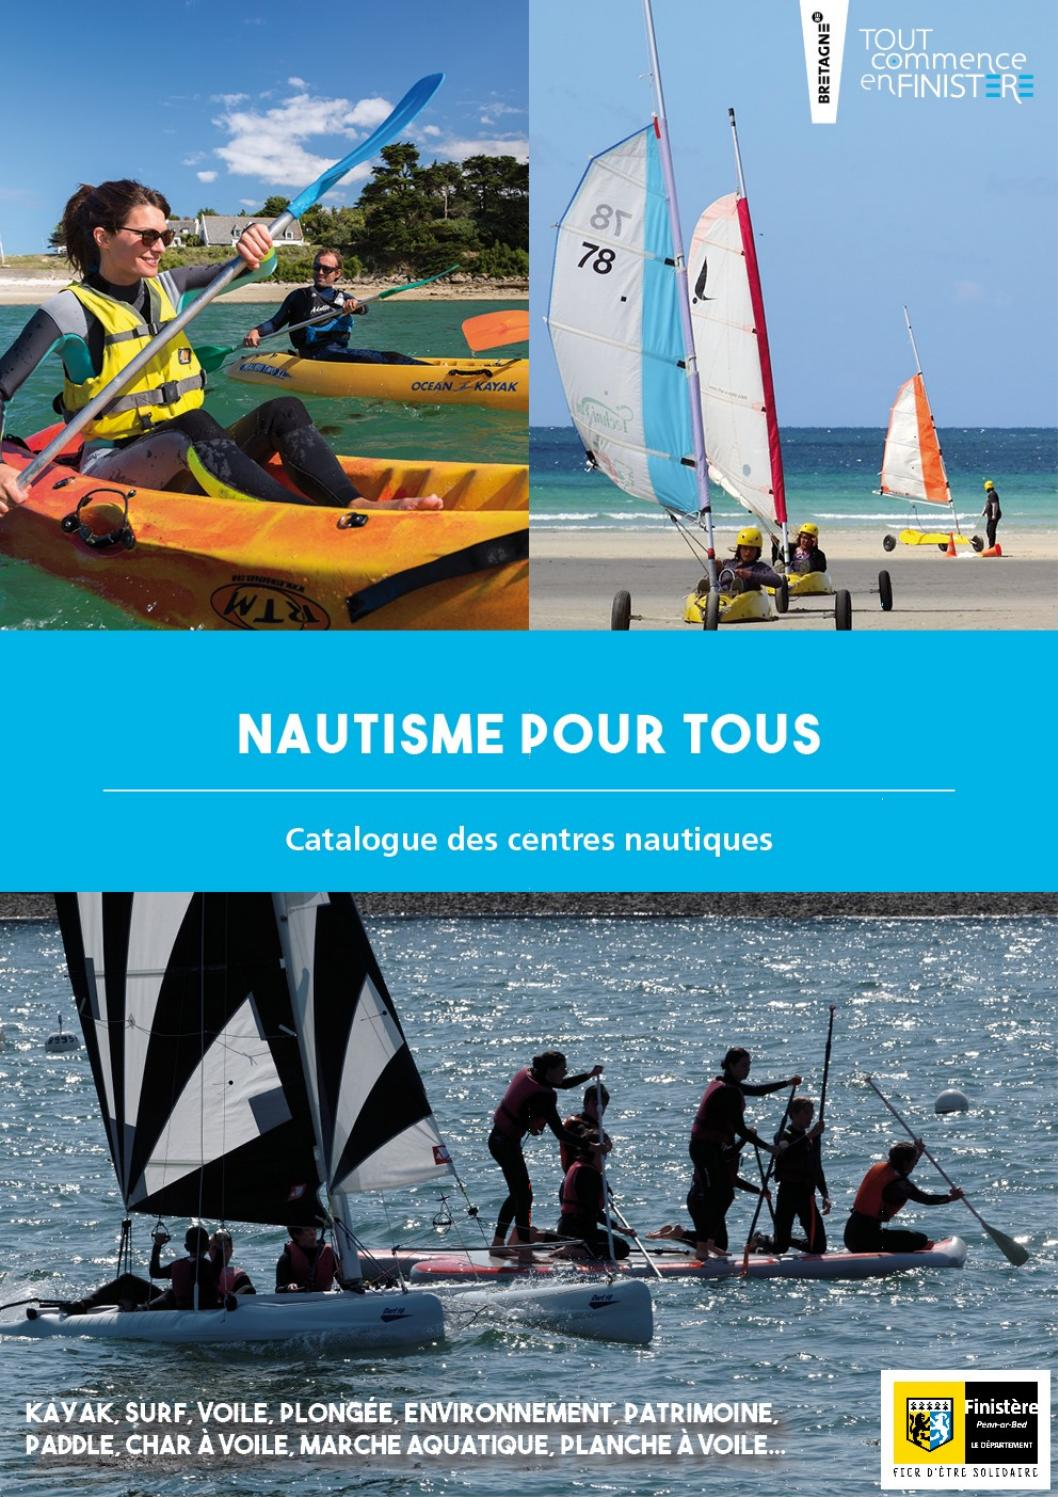 Nautisme Pour Tous Catalogue By Finistere 360 Issuu